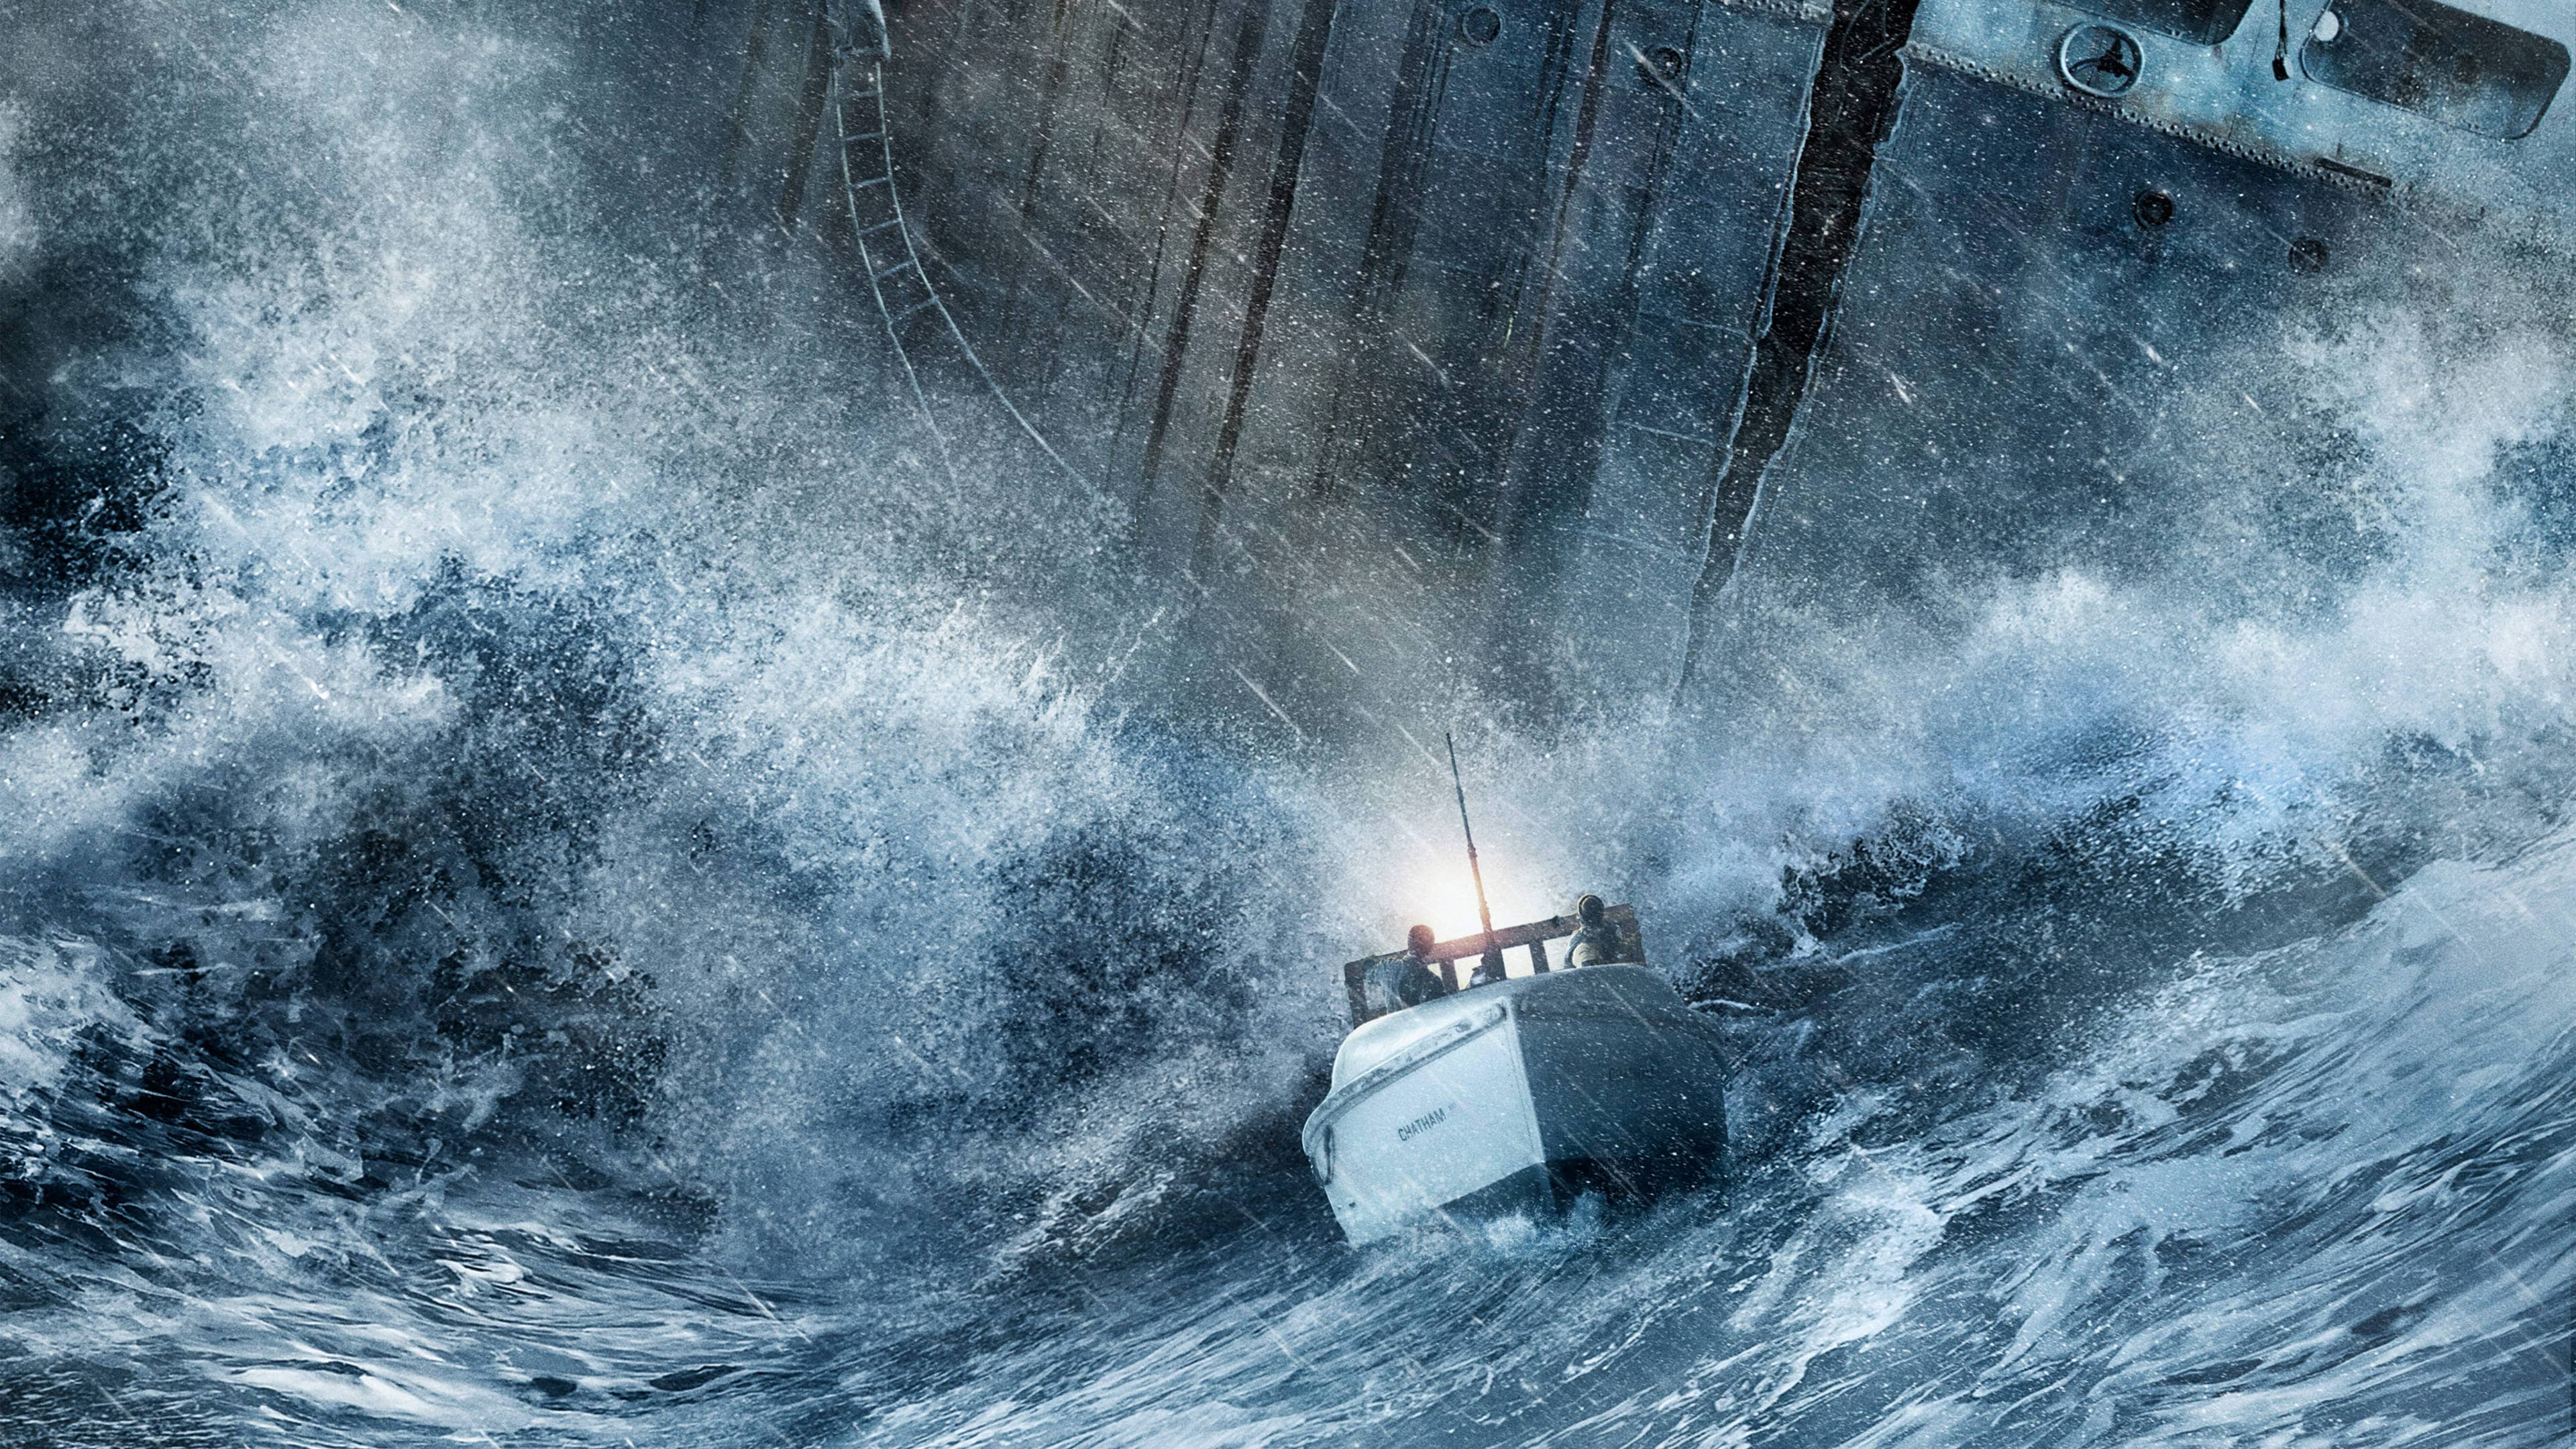 The Finest Hours Backgrounds